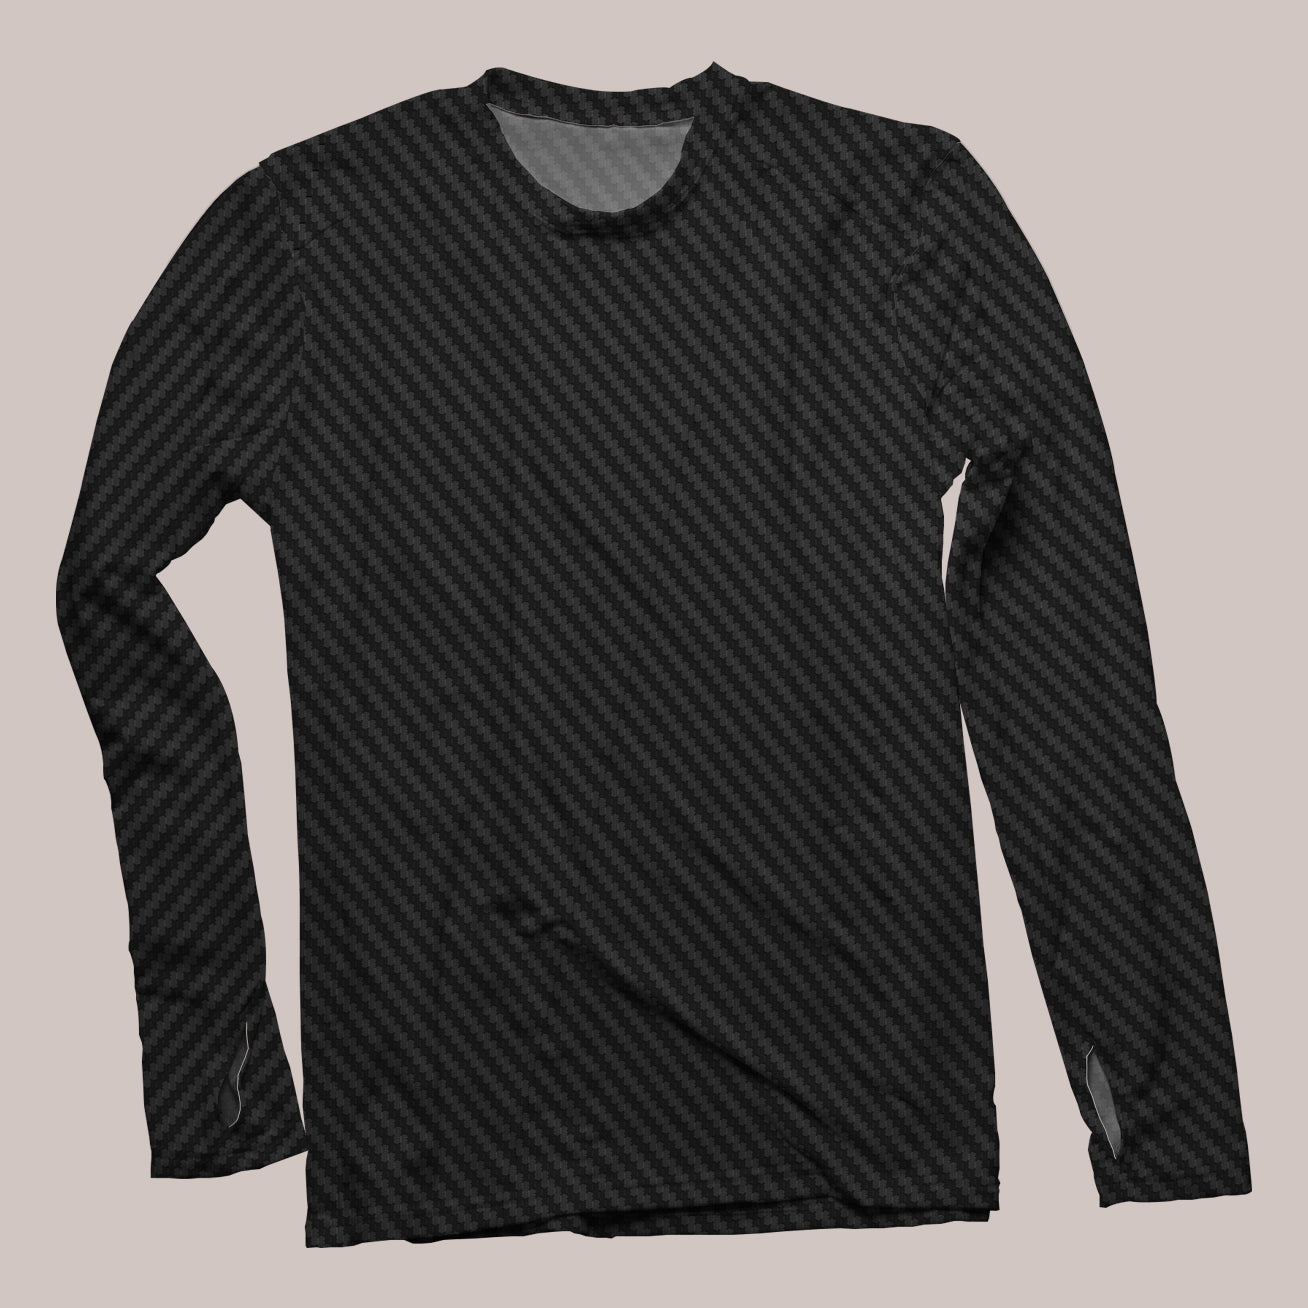 Carbon Men's Flux Long Sleeve Shirt - Tetramode® | Psy Styles. Men & Womens Psychedelic Tops & Bottoms